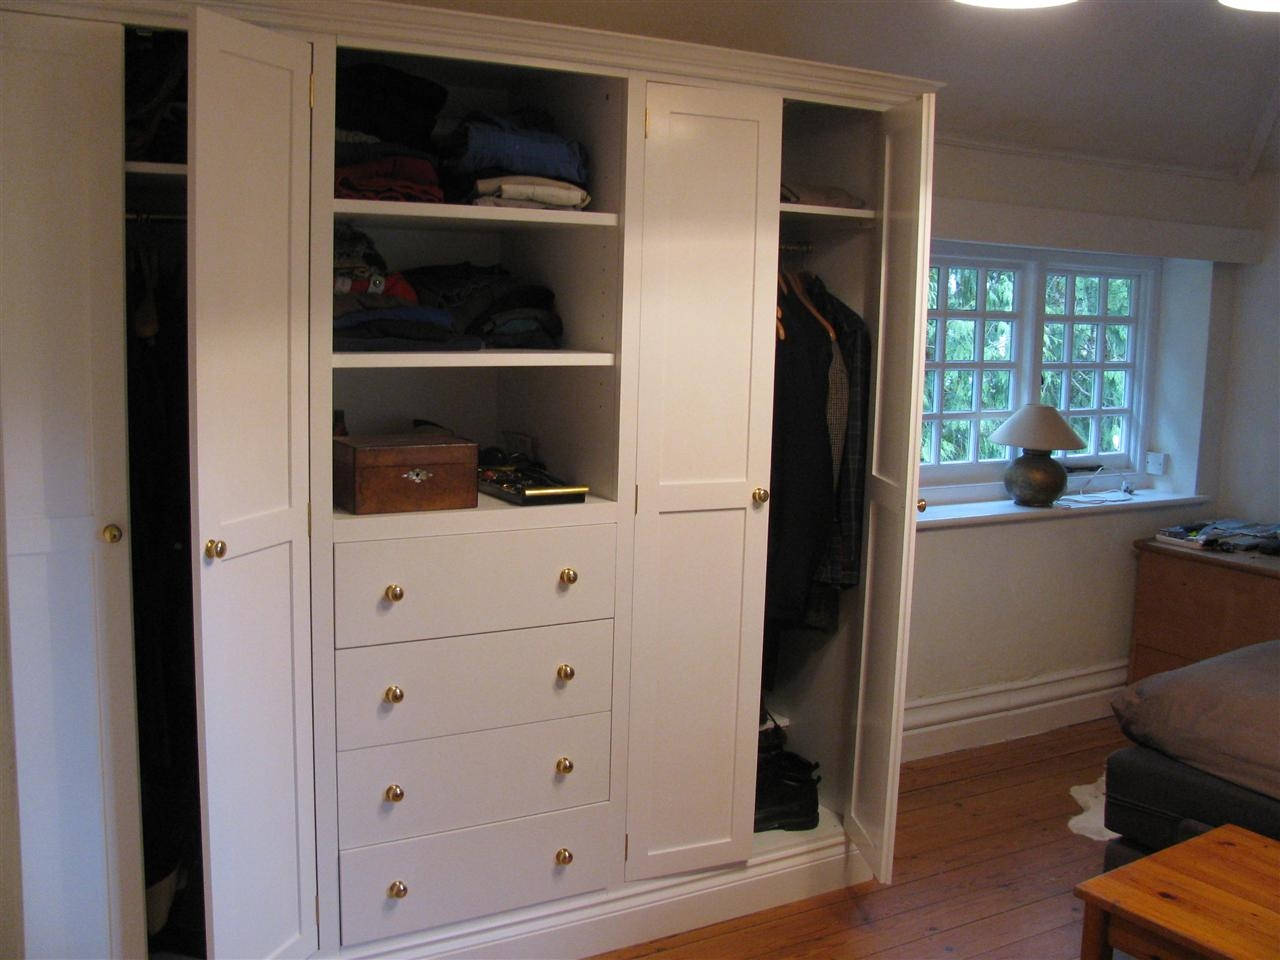 Wardrobes Pertaining To Wardrobe With Drawers And Shelves (View 11 of 15)